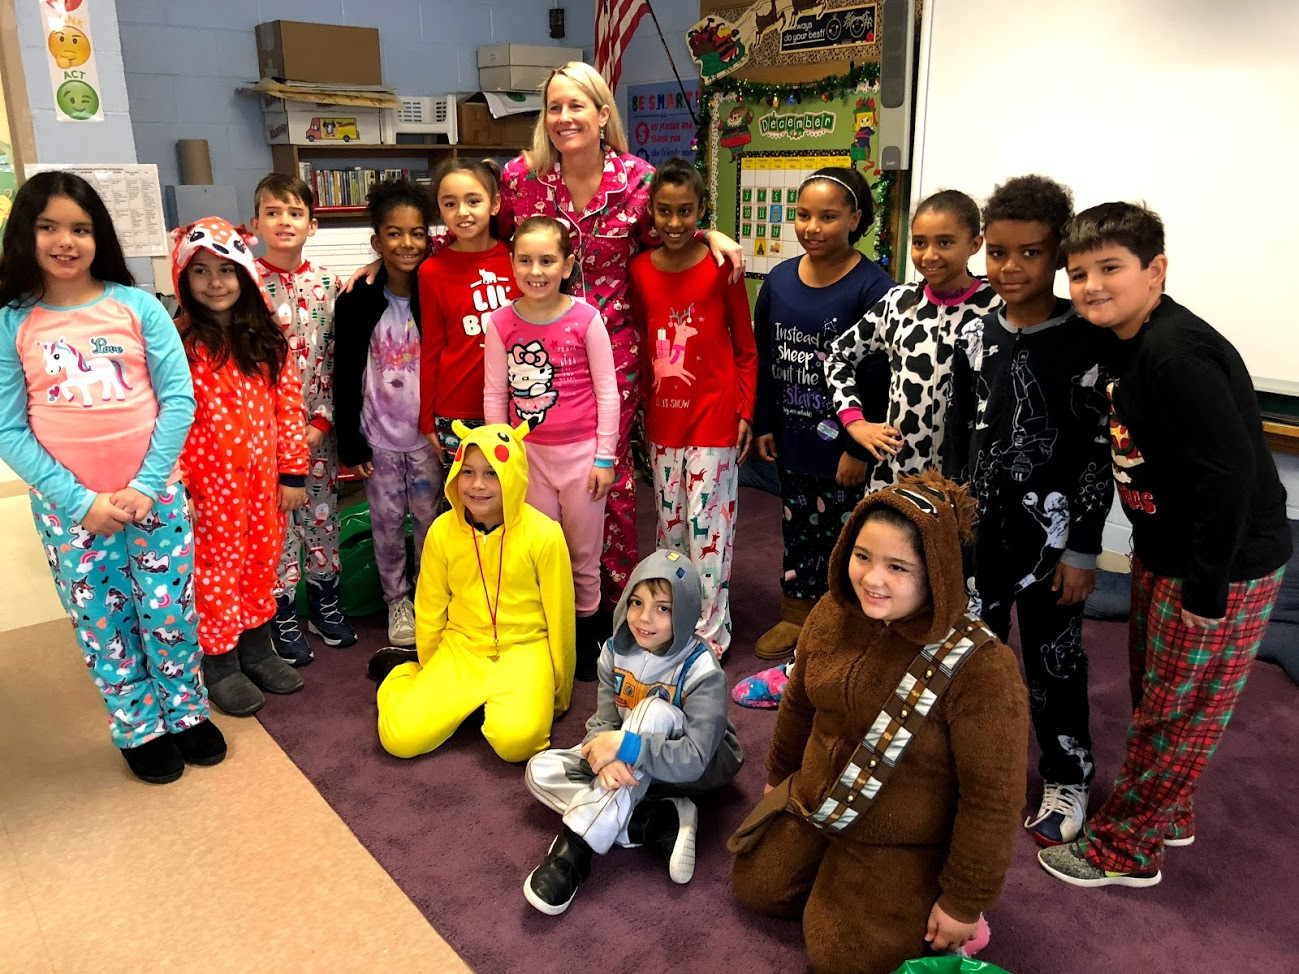 4th grade representing PJ (Spirit Day) with PRIDE